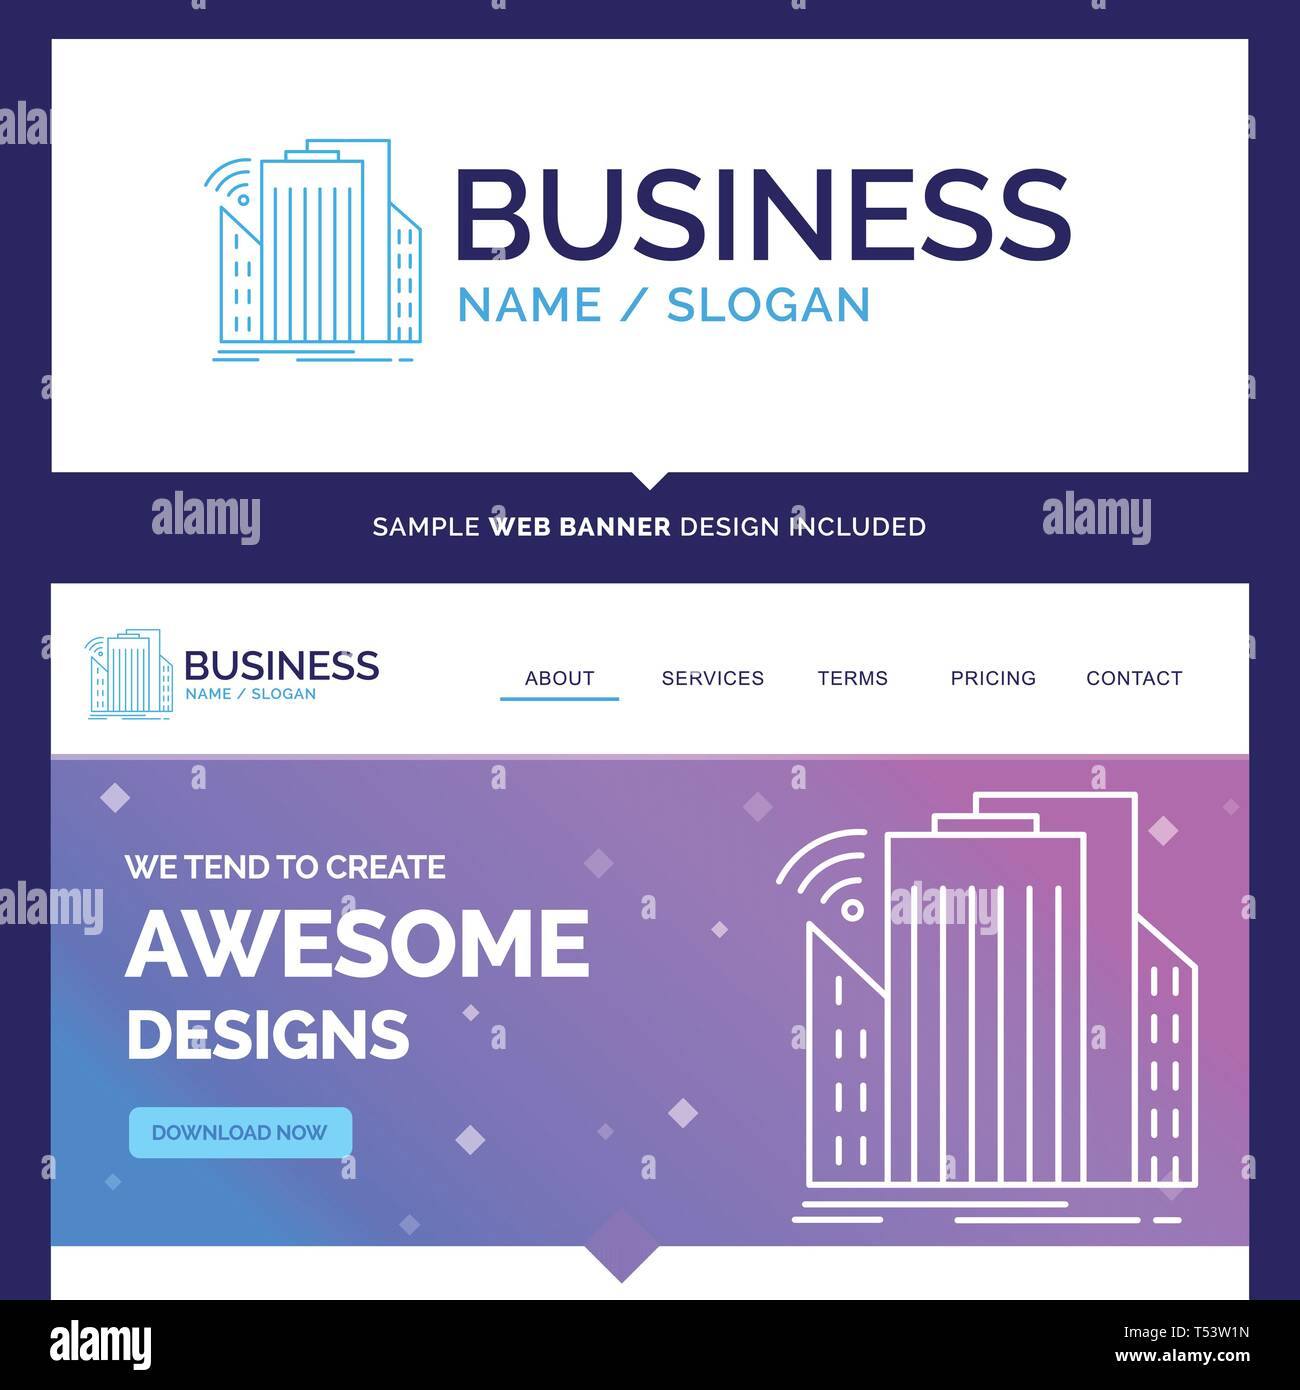 Beautiful Business Concept Brand Name Buildings, city, sensor, smart, urban Logo Design and Pink and Blue background Website Header Design template. P - Stock Vector